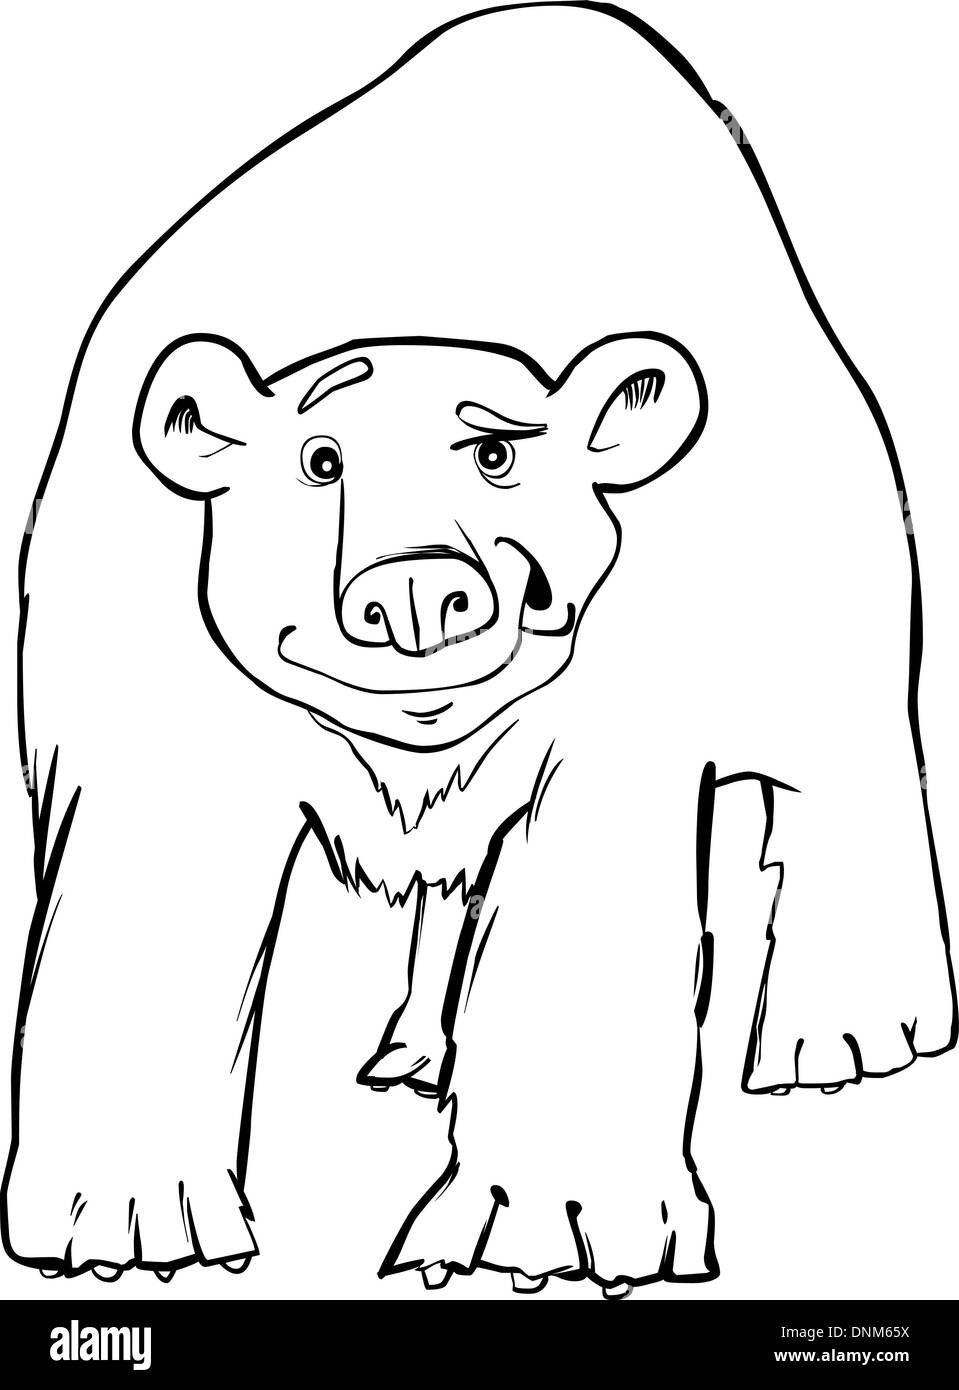 Cute Cartoon Polar Bear Ice Stockfotos & Cute Cartoon Polar Bear Ice ...